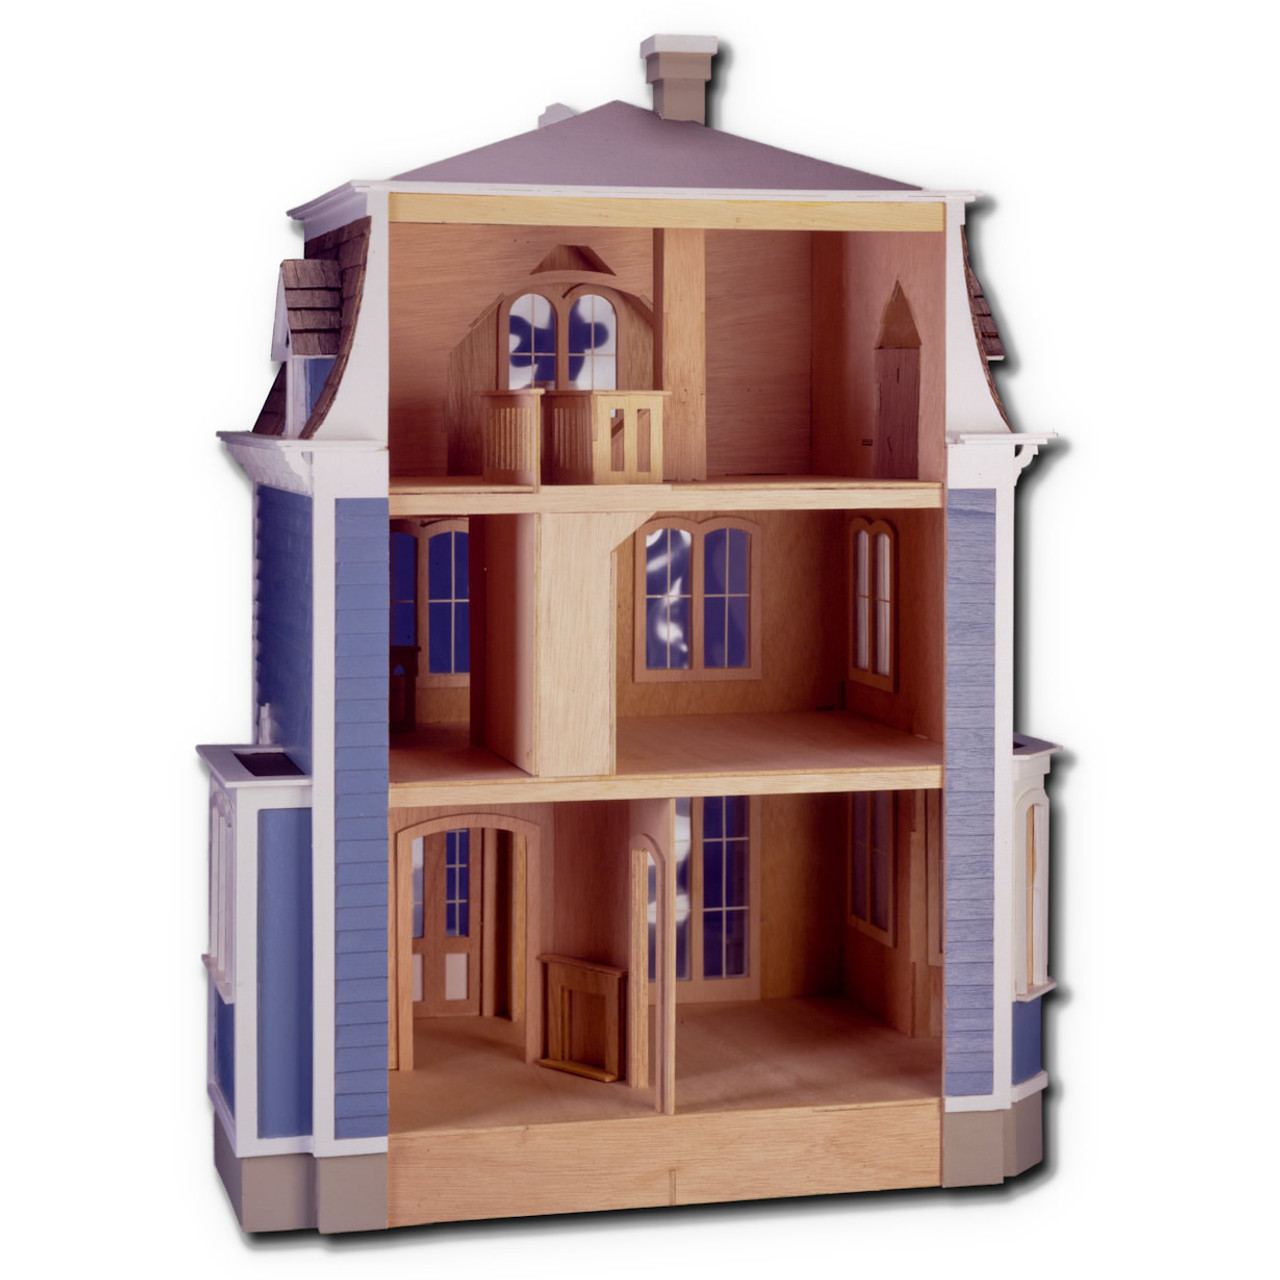 Outstanding Willowcrest Dollhouse Kit Wiring Digital Resources Cettecompassionincorg